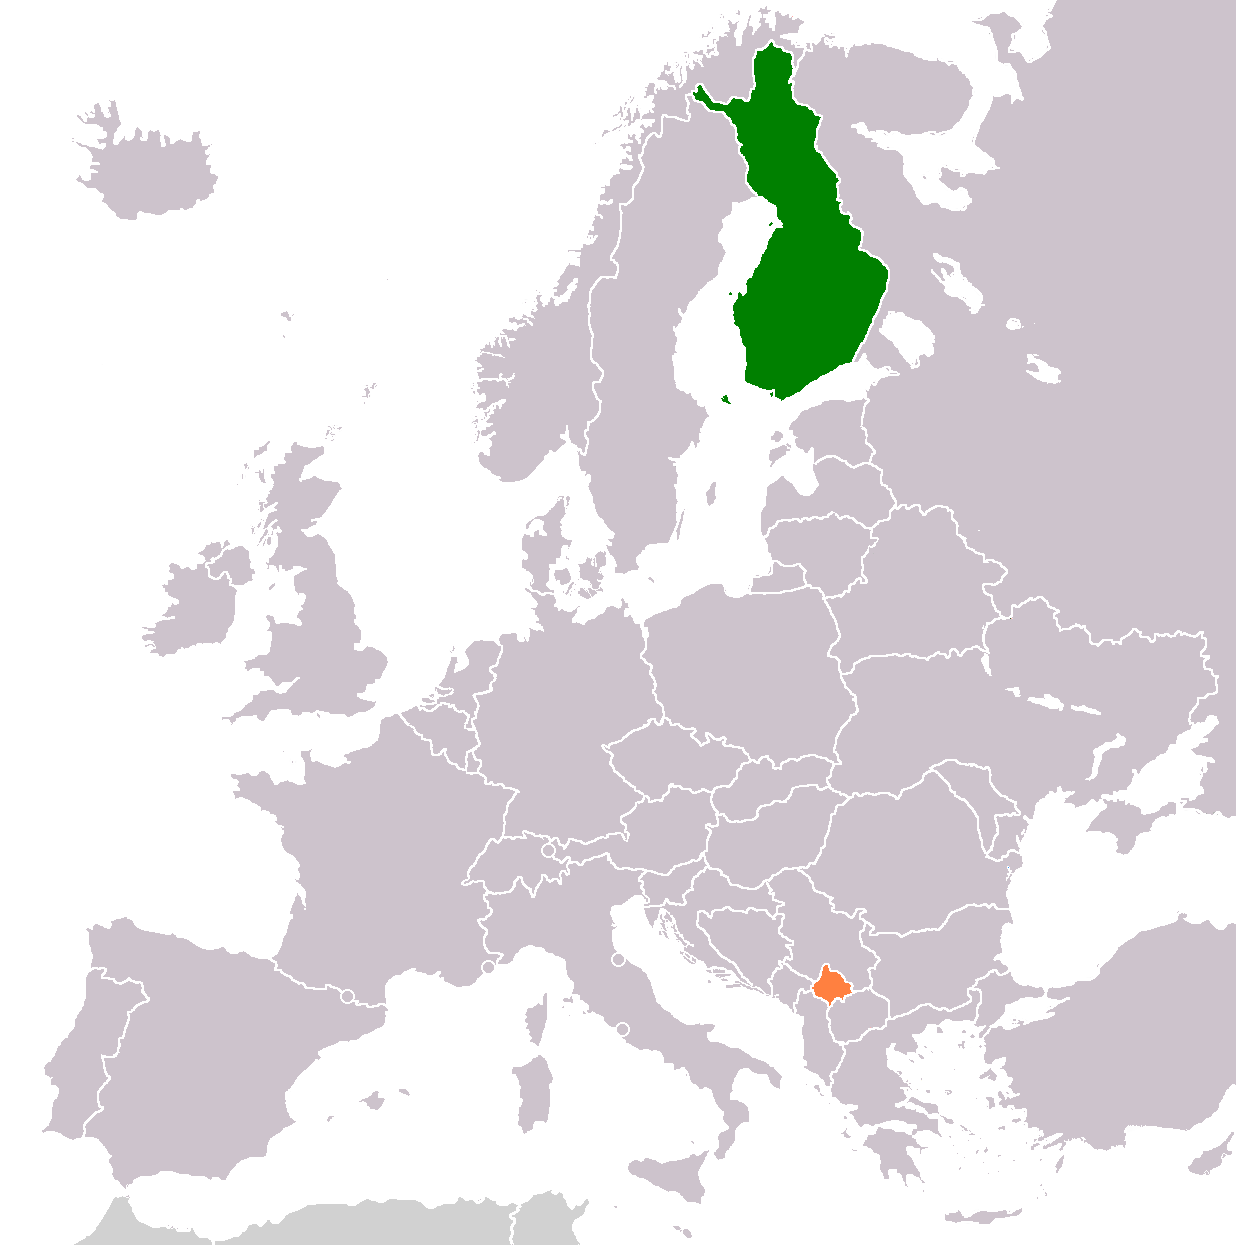 Finland Kosovo Locator 2 large map